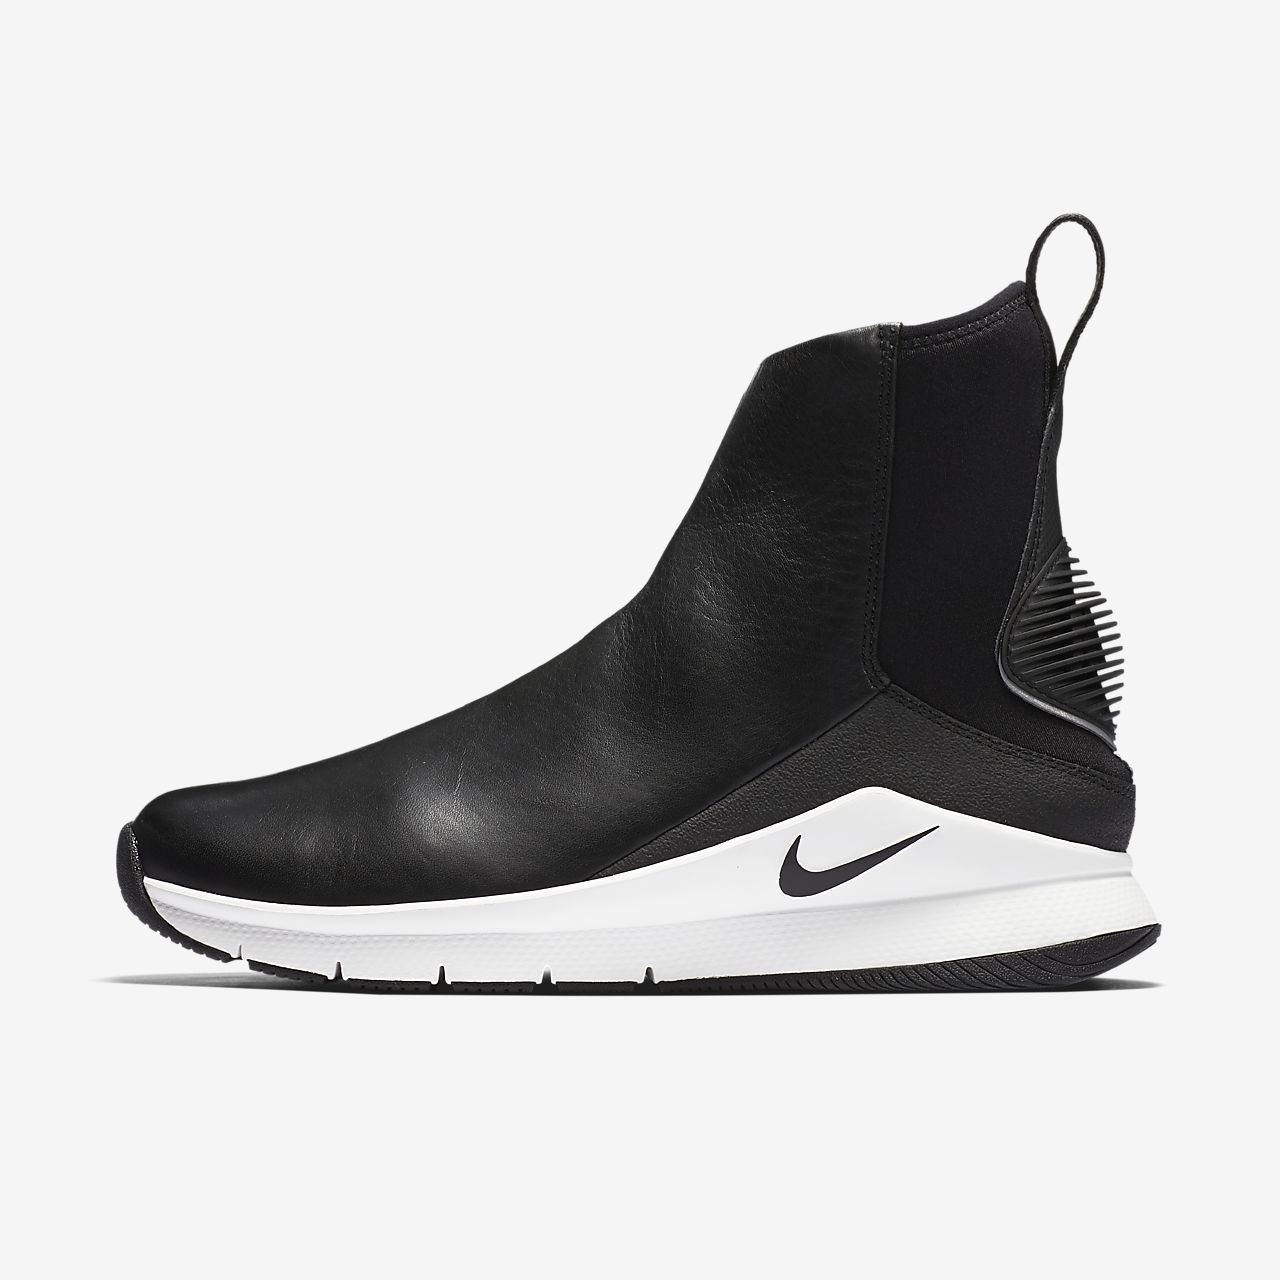 Nike Boots Although you may know Nike mainly for its athletic sneakers and apparel, Nike boots have become favorite cold-weather shoes, and for good reason. Nike pairs its popular form with function to create boots that are ideal for harsh weather conditions while still looking fashionable.